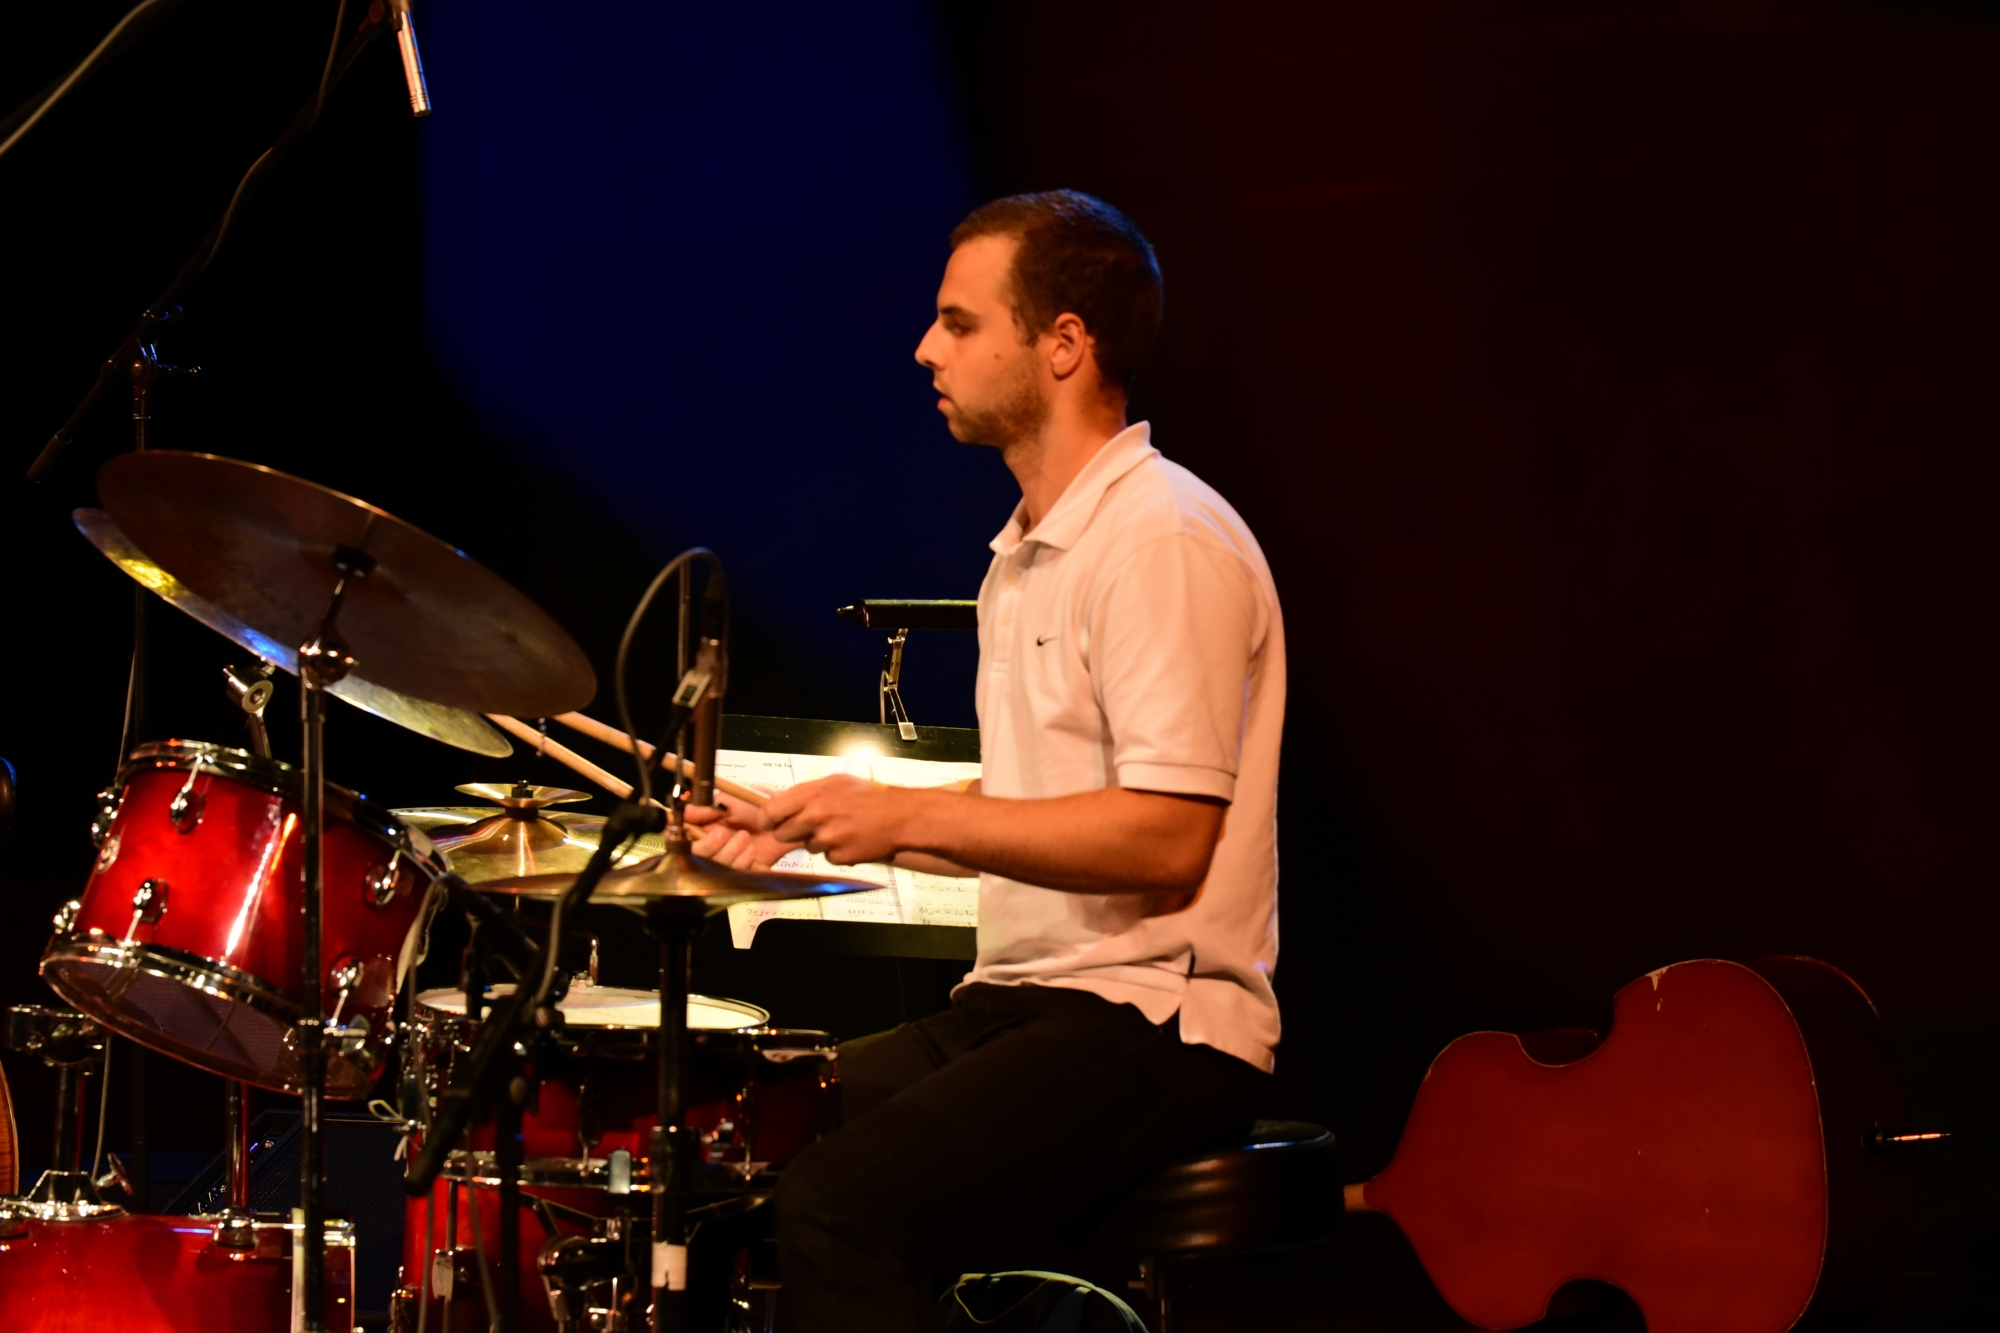 Out of the kitchen: Samuel Santasarkka - drums